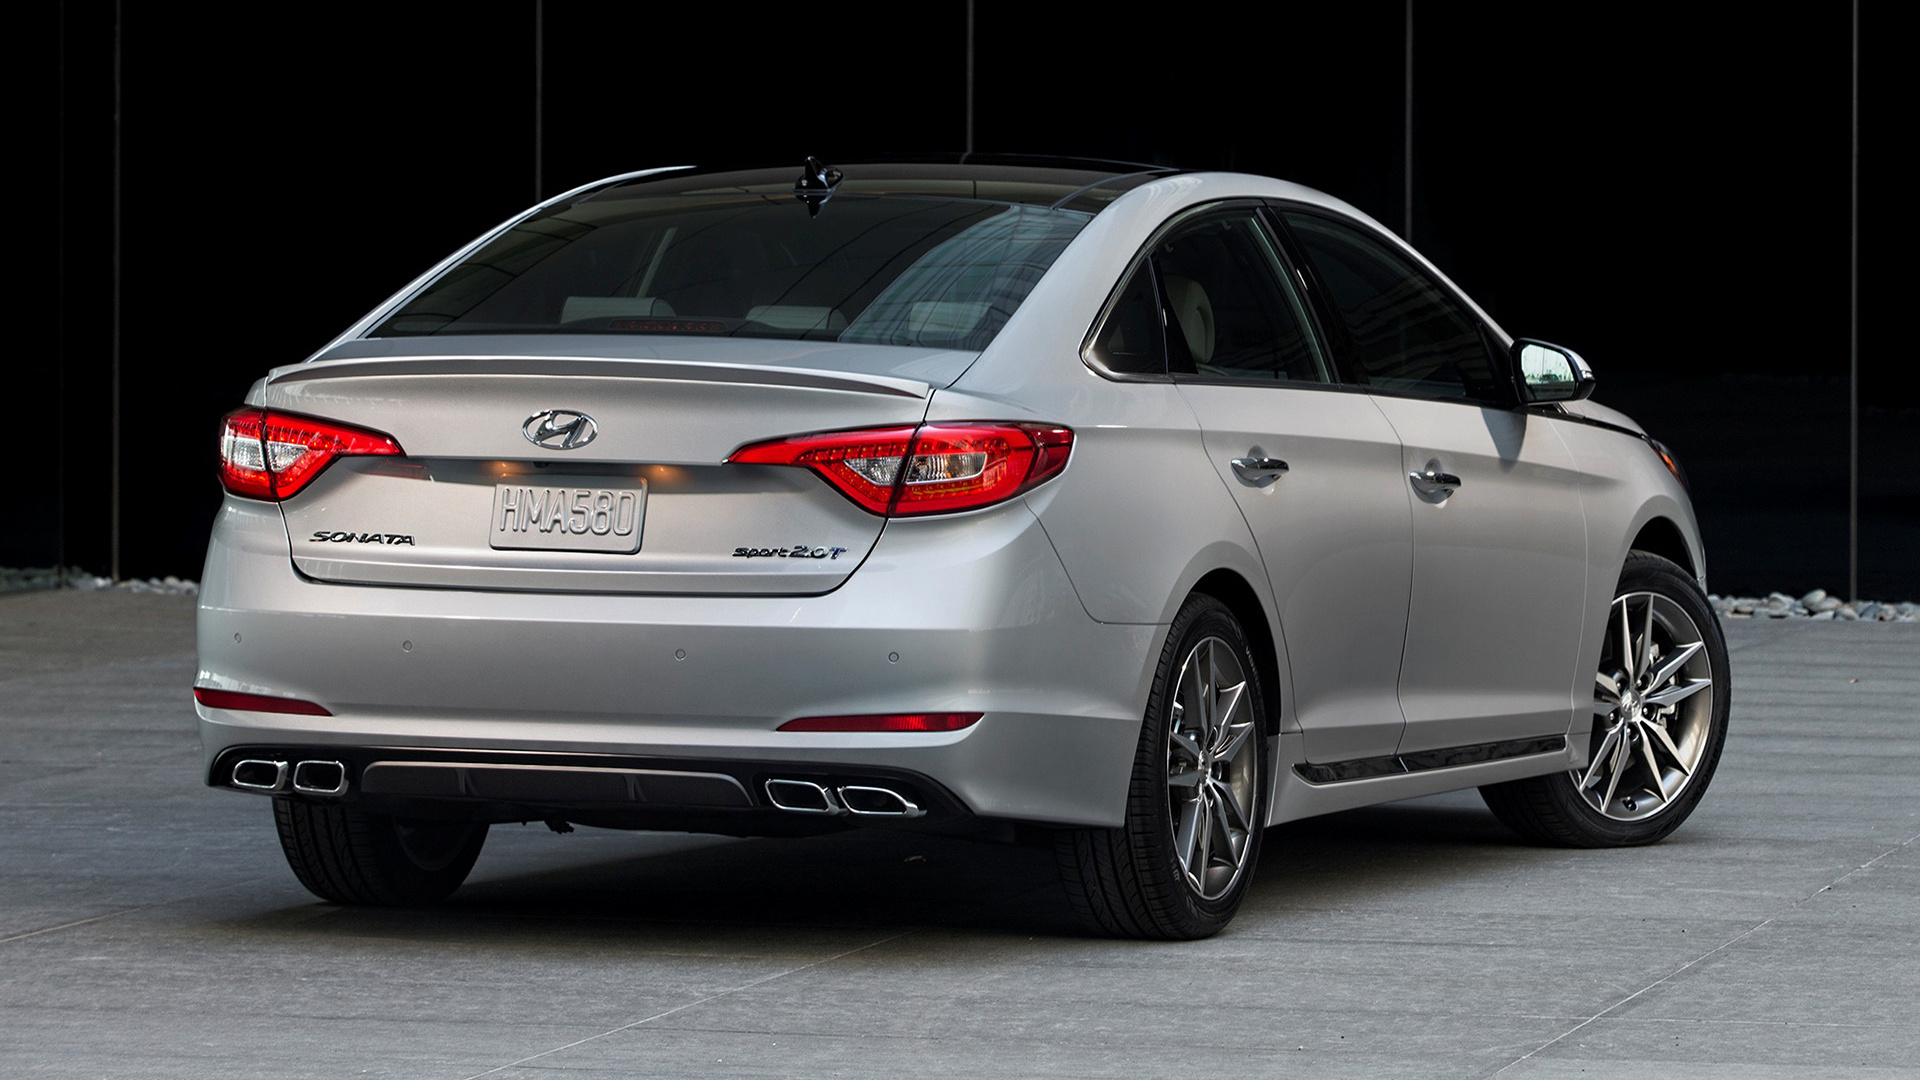 hyundai sonata sport 2015 us wallpapers and hd images car pixel. Black Bedroom Furniture Sets. Home Design Ideas